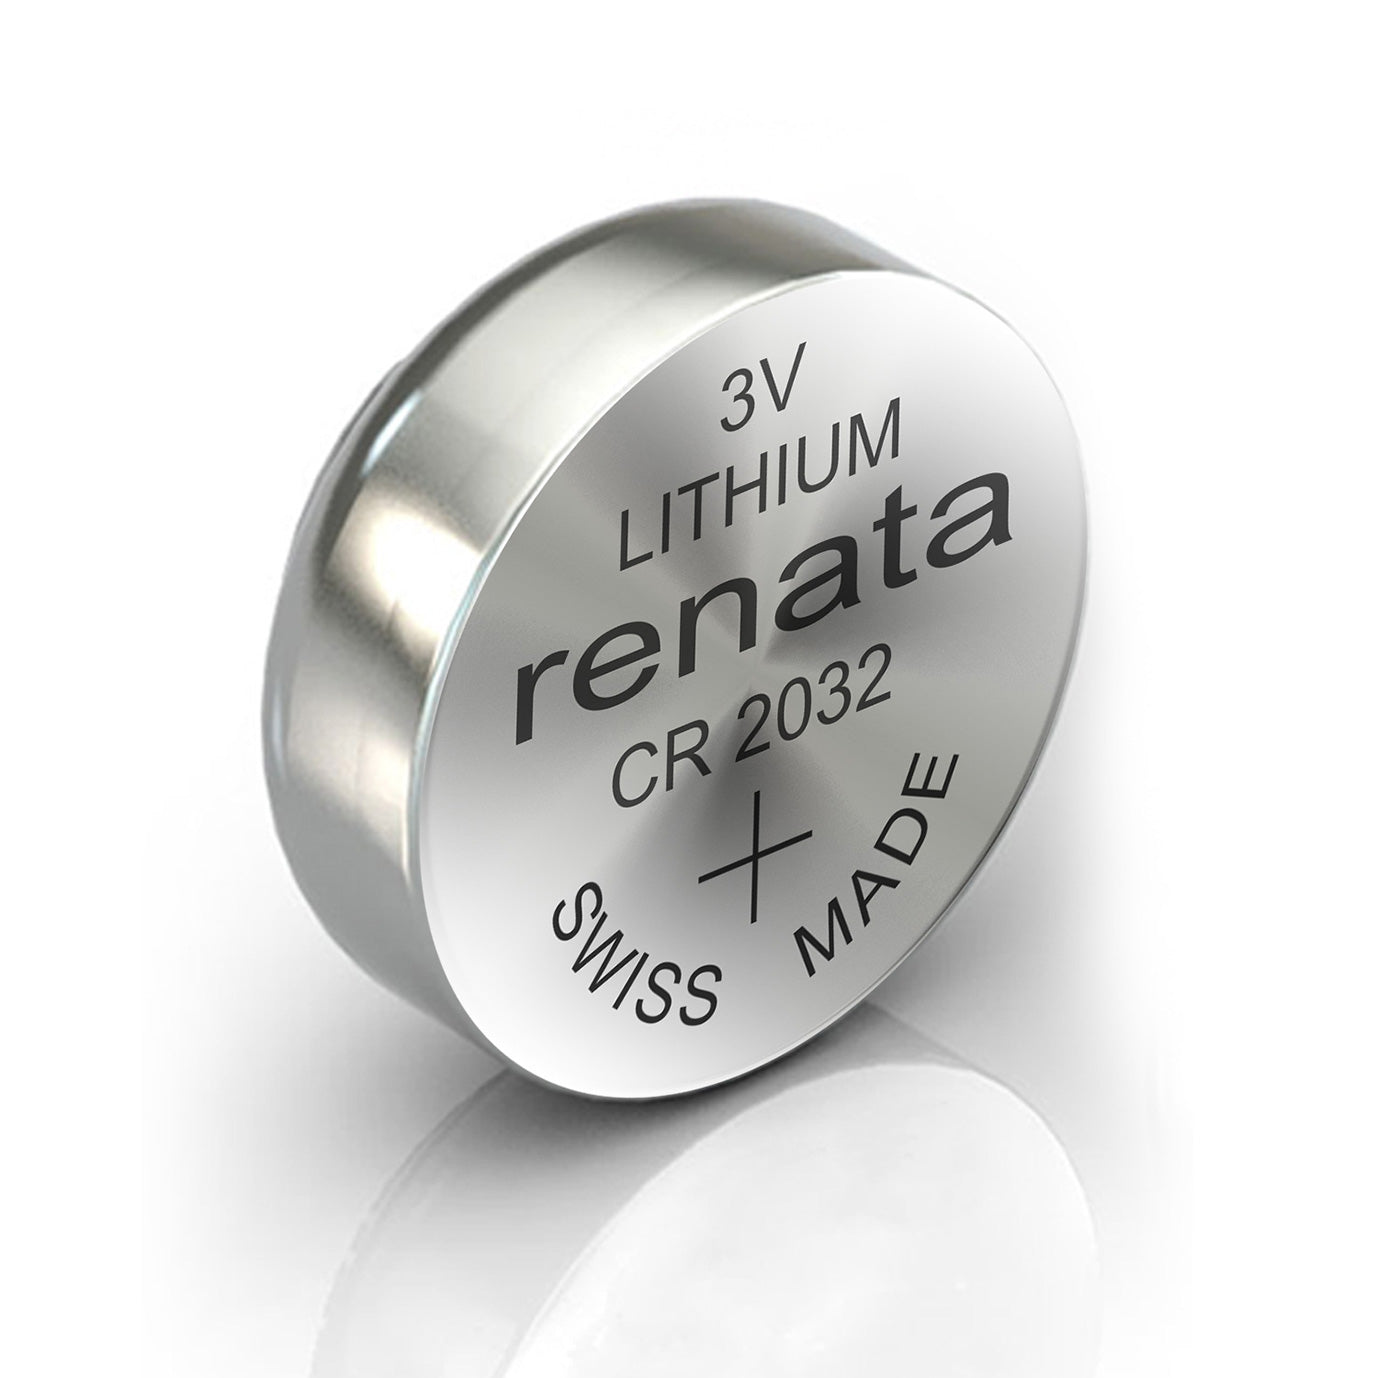 1x Renata CR2032 Watch Battery 3V Swiss Made Lithium Silver Oxide, Electronics by TradeNRG